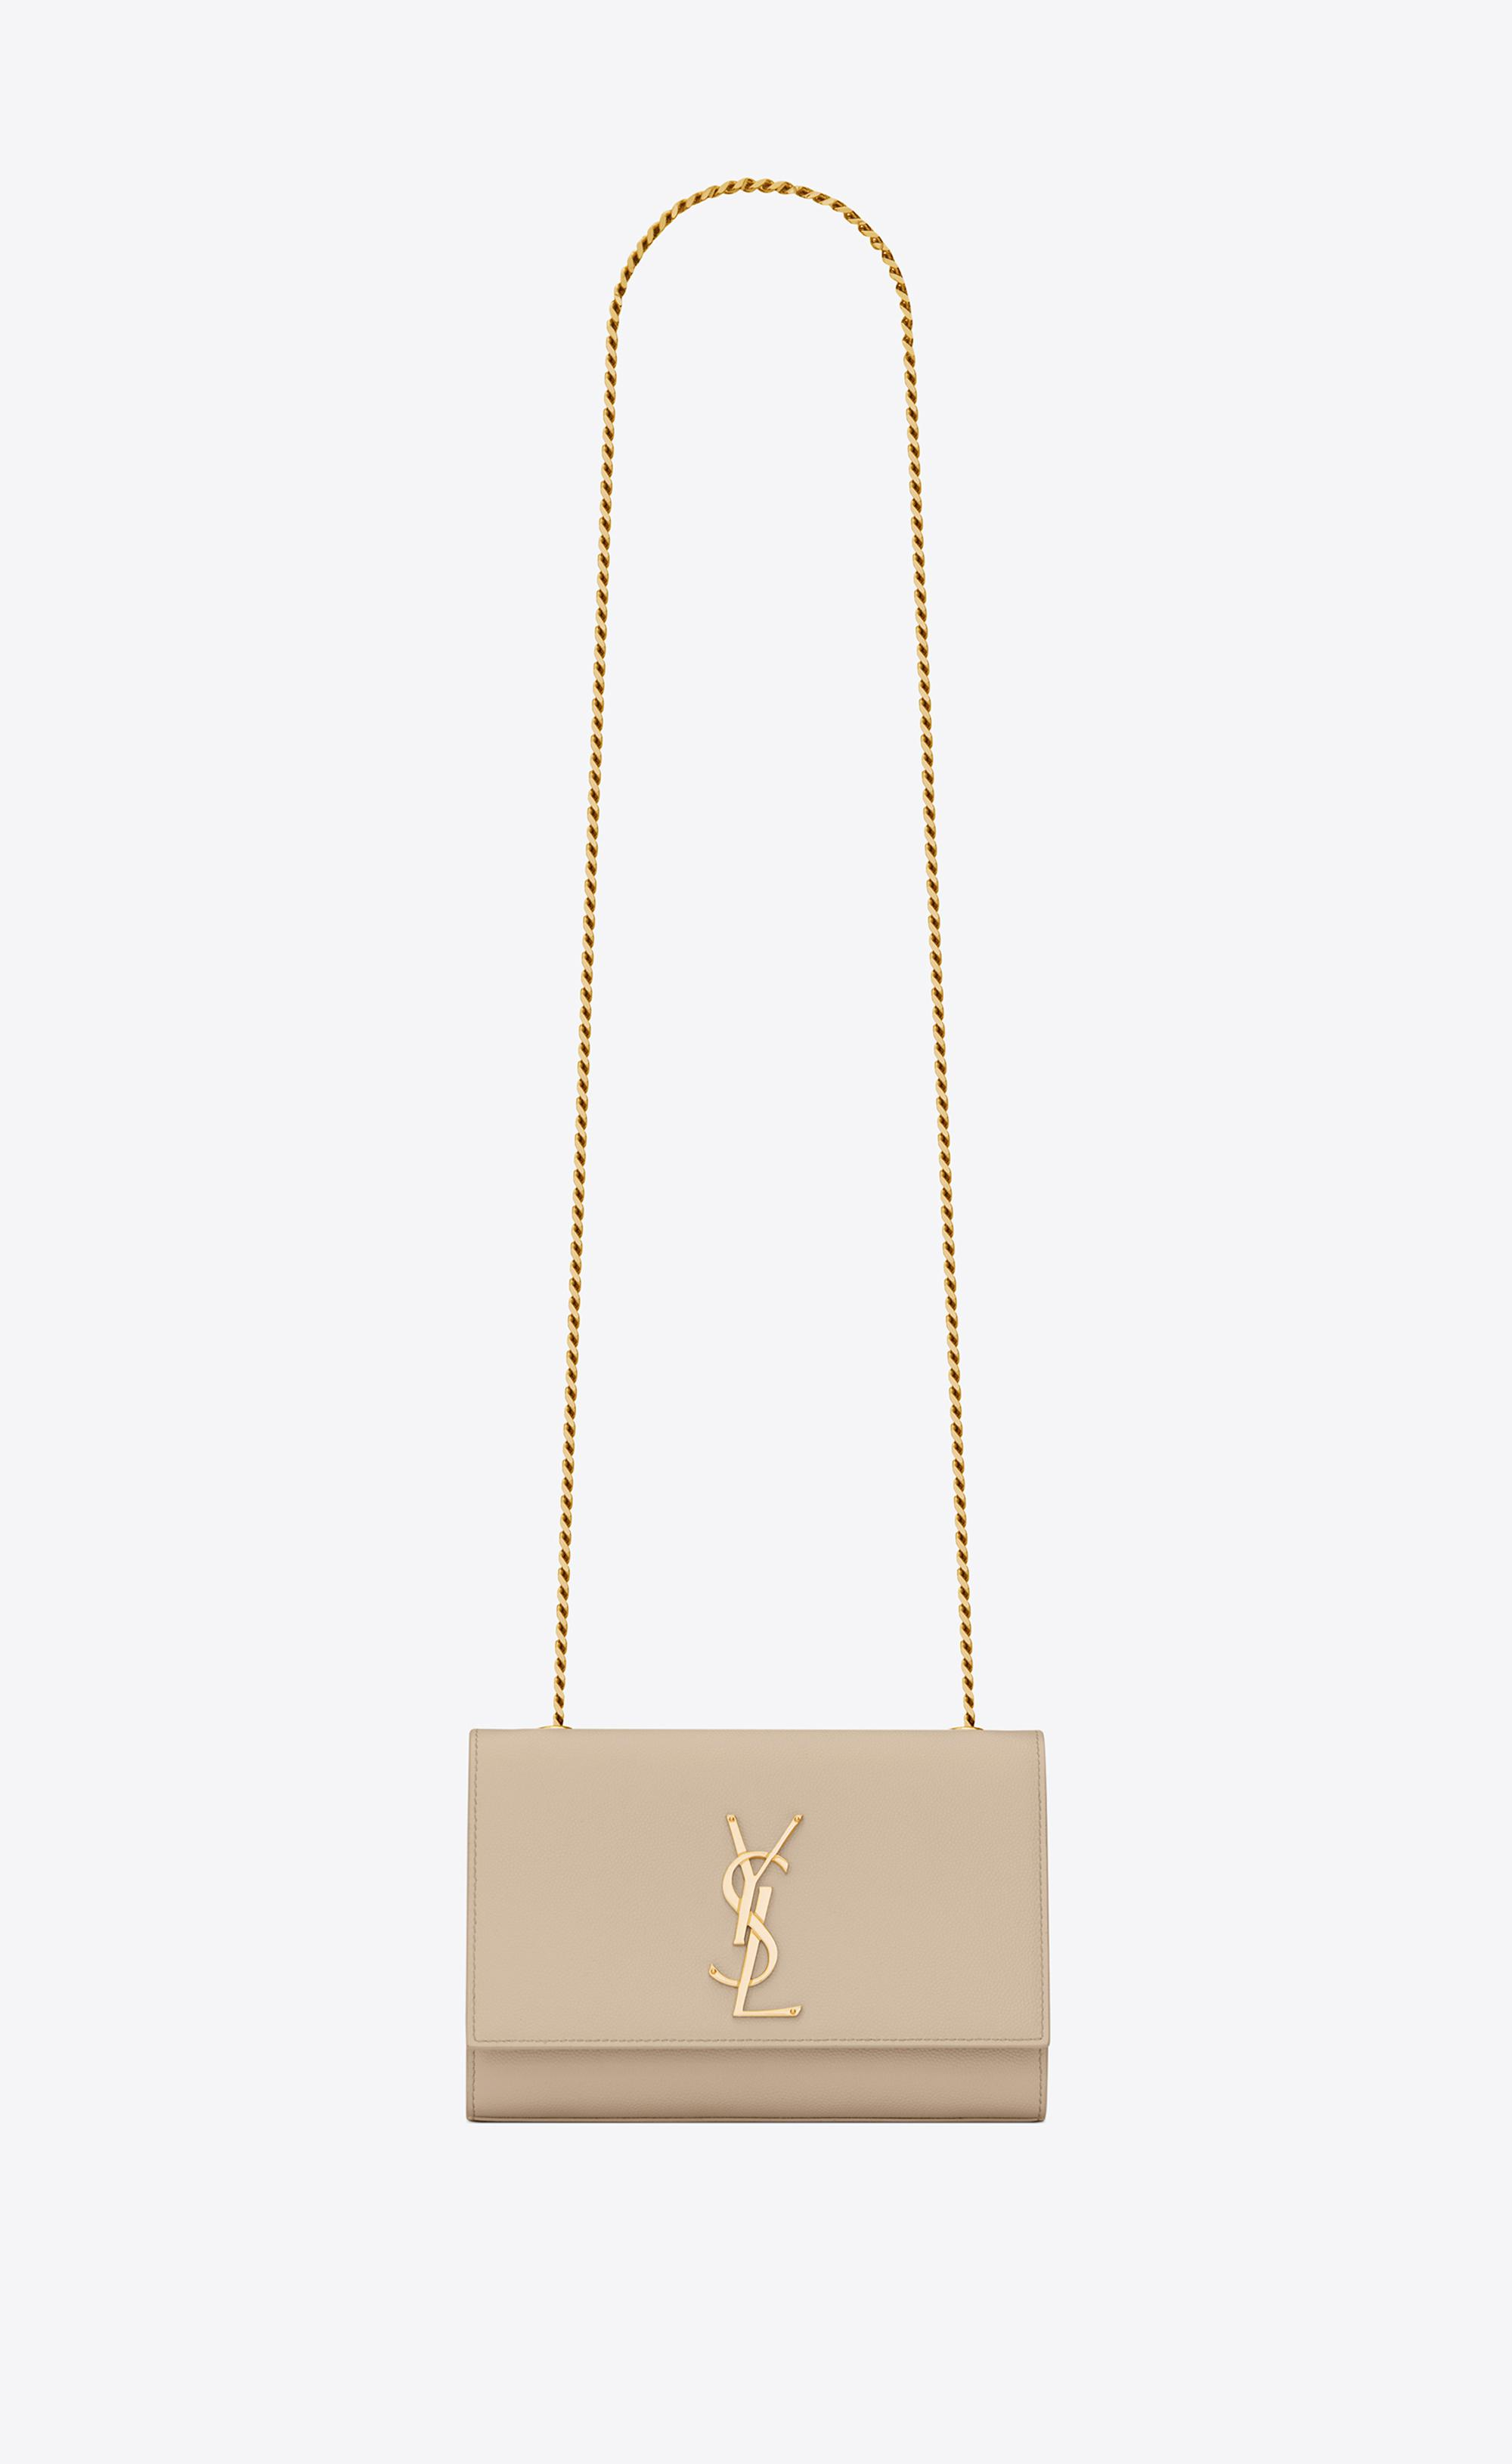 cca143634128 Lyst - Saint Laurent Small Kate Chain Bag In Powder Textured Leather